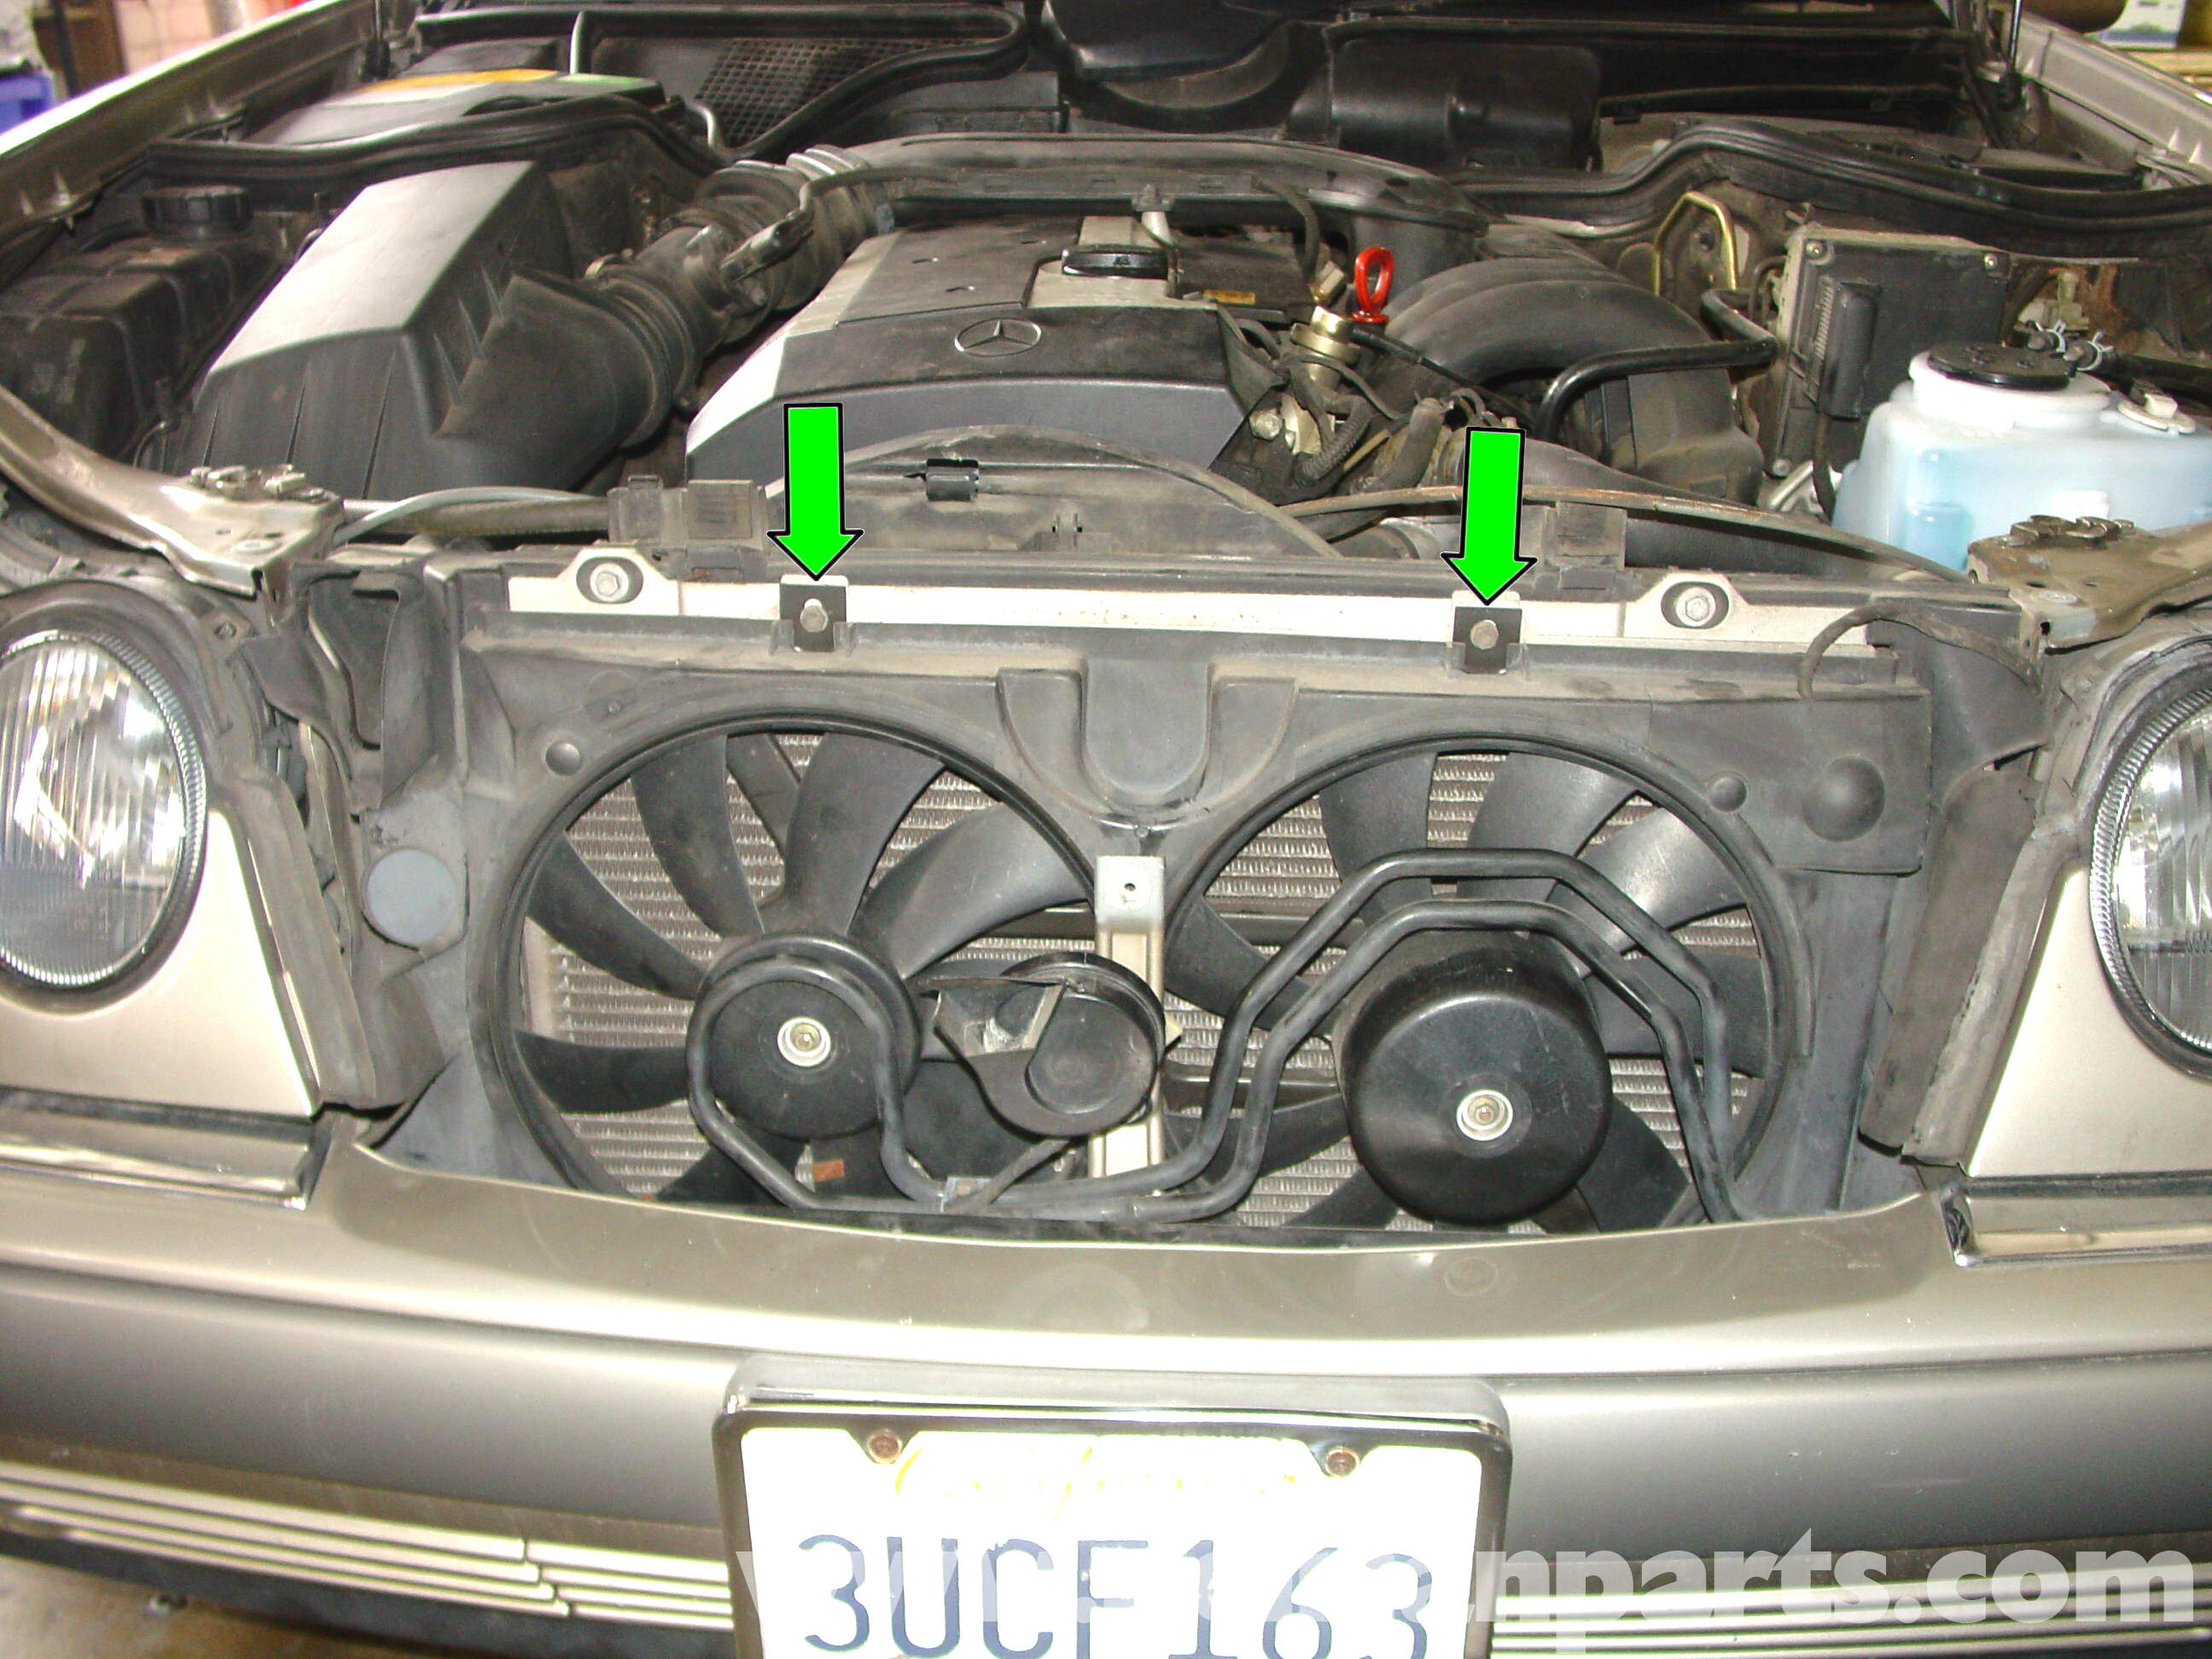 Showthread together with How Car Cooling Systems Work moreover 17 WATER Auxiliary Cooling Fan Belt Replacement besides Free Chevy Wiring Diagrams besides 4 Season Tent. on 17 water auxiliary cooling fan belt replacement